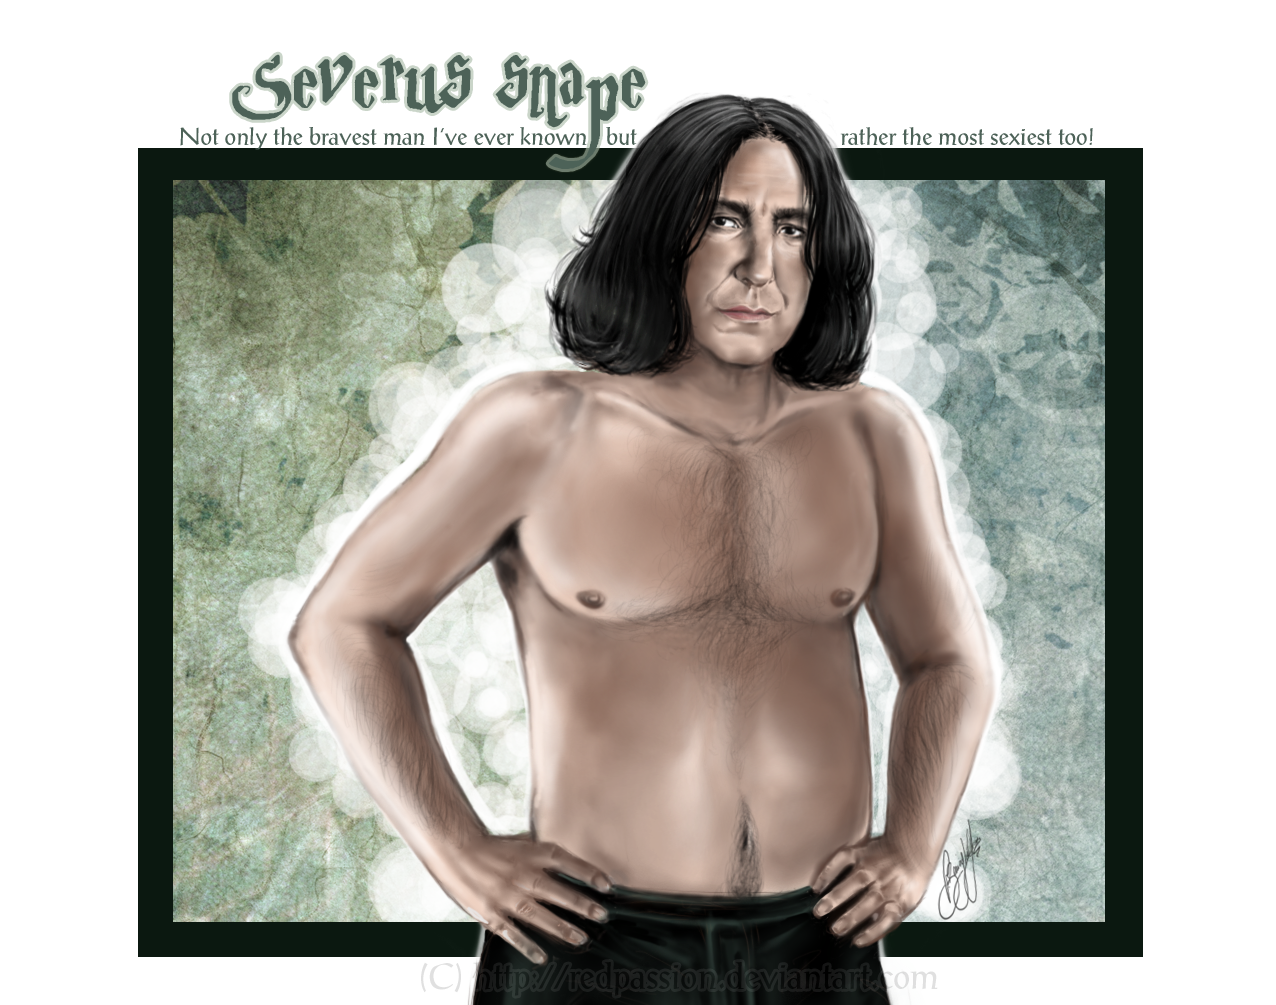 fc05.deviantart.net/fs70/f/2012/104/6/d/severus_snape___the_bravest_and_most_sexiest__by_redpassion-d4w6810.png